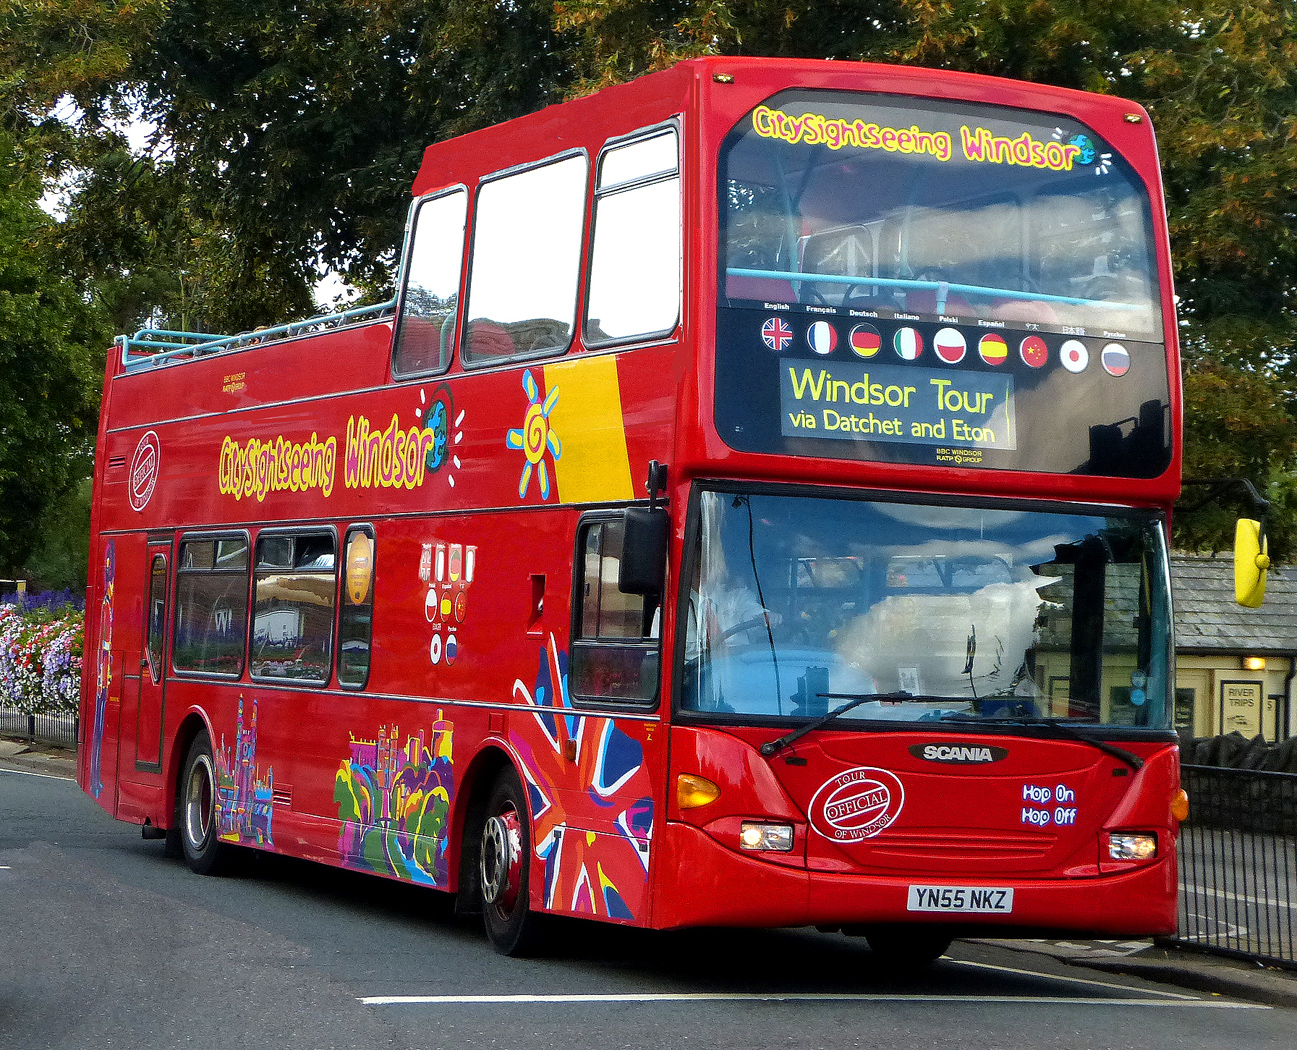 DOUBLE DECKER TO DATCHET by John Cano-Lopez